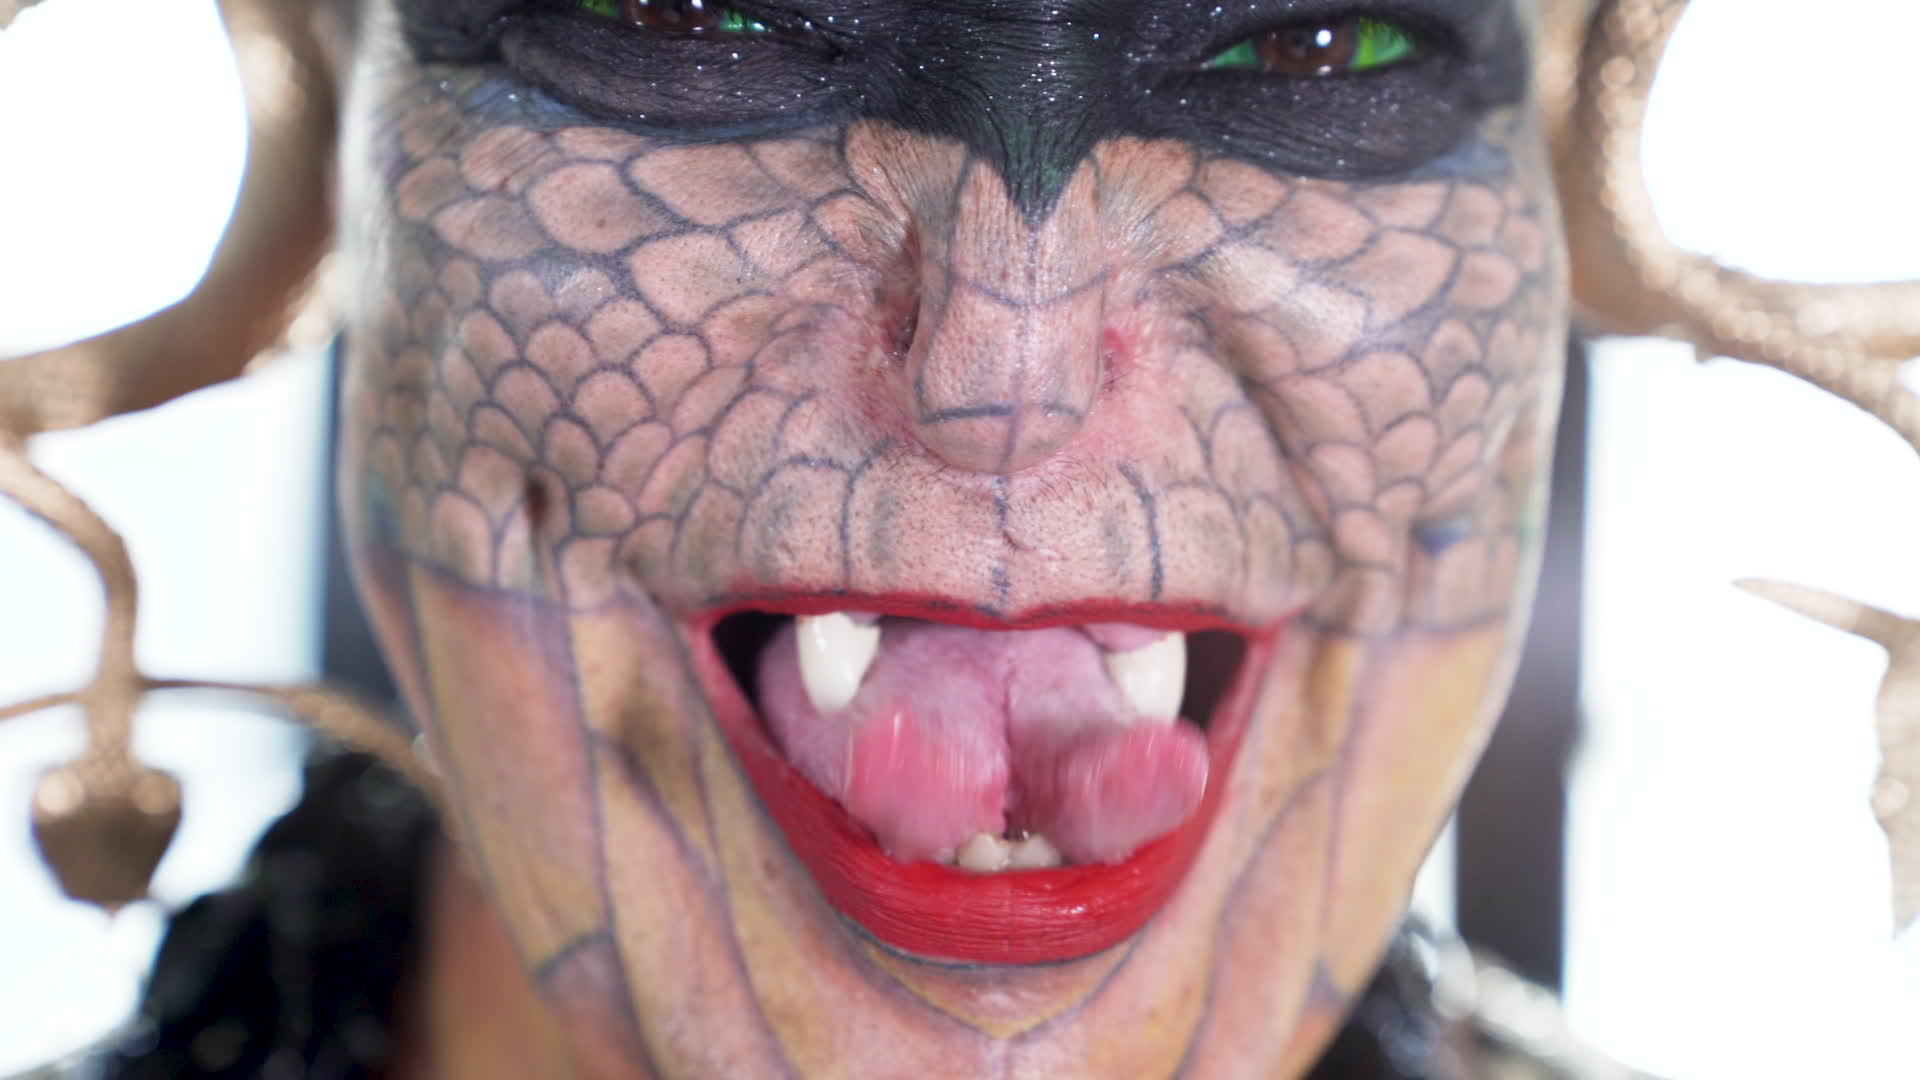 My Unconventional Life: Woman undergoes extreme body modifications to turn into a dragon